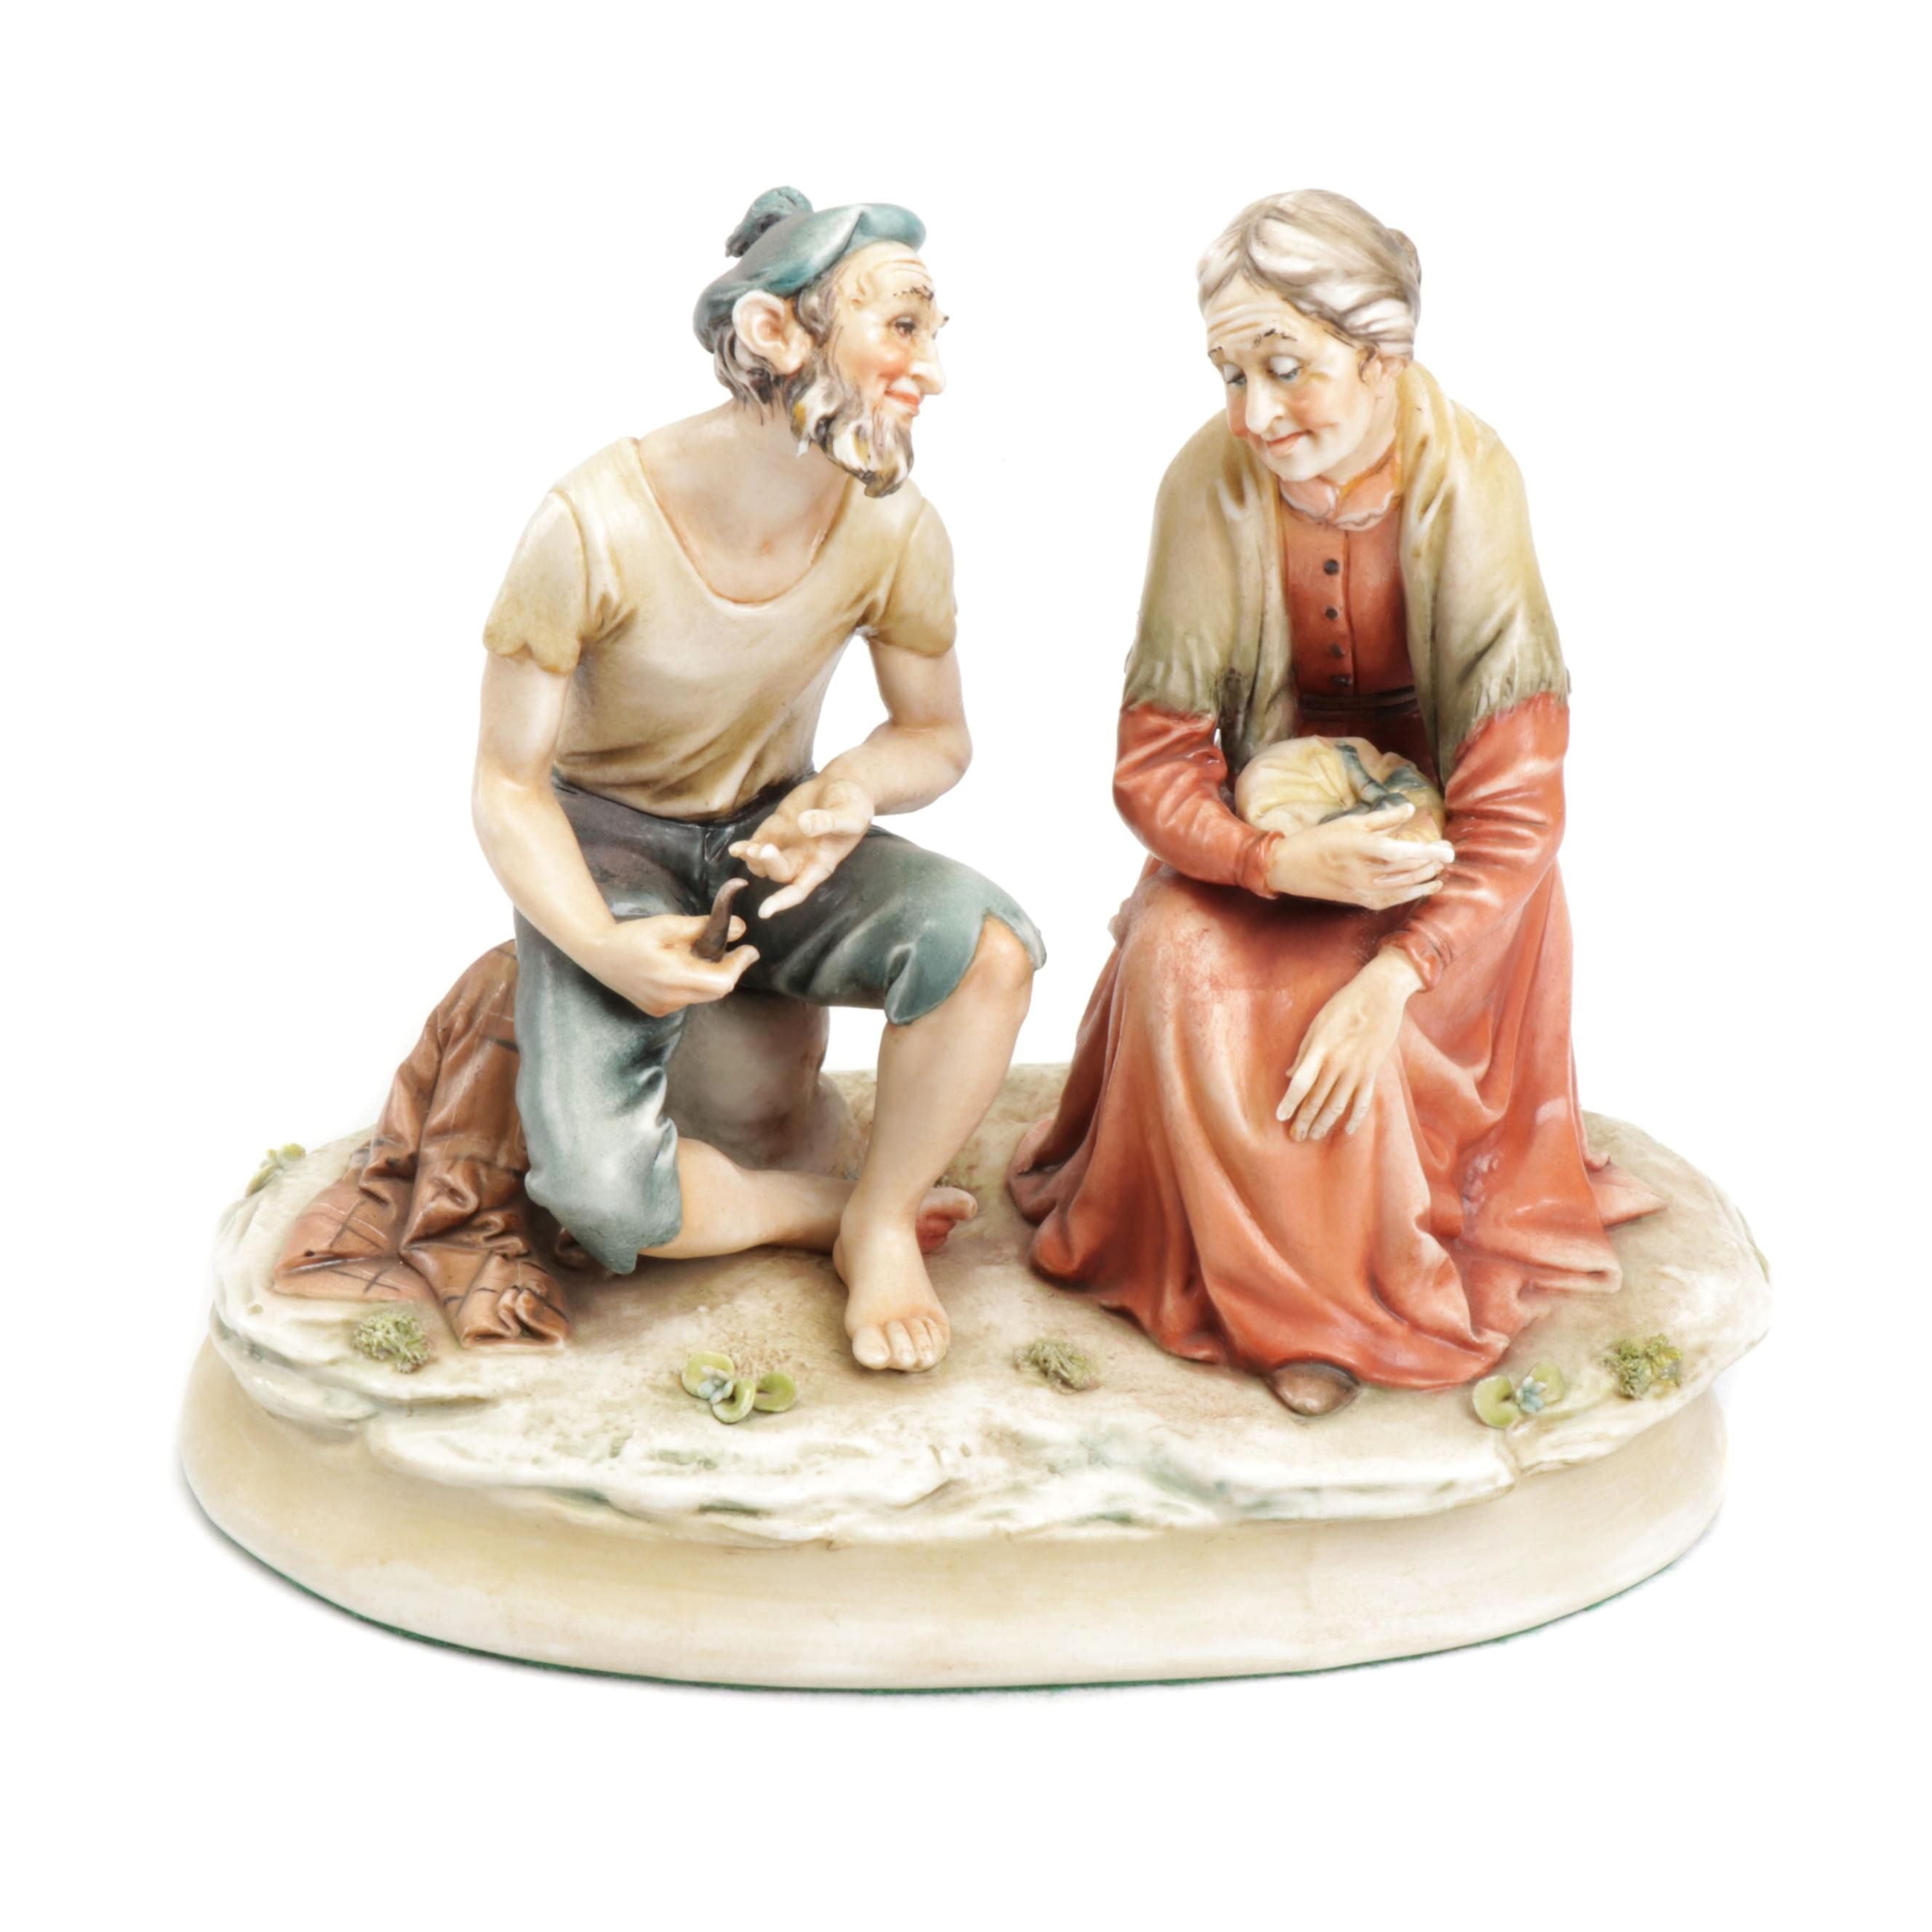 Antonio Borsato Porcelain Figurine of Seated Figurines